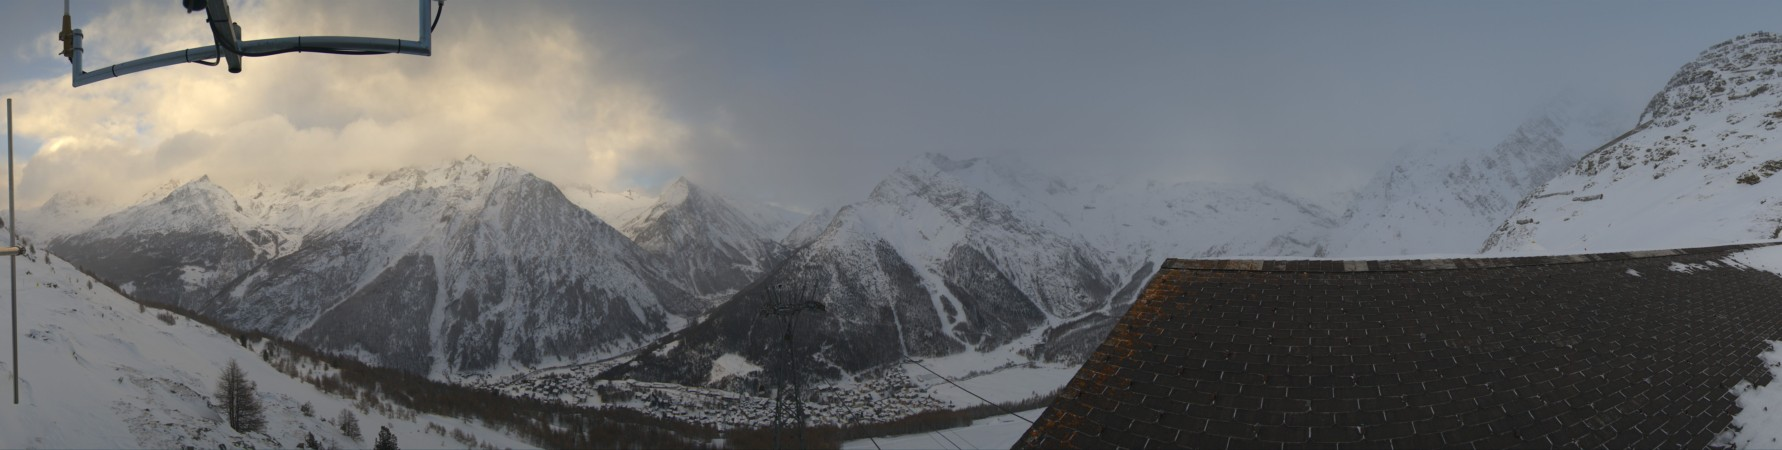 Webcam Saas Fee Hannig